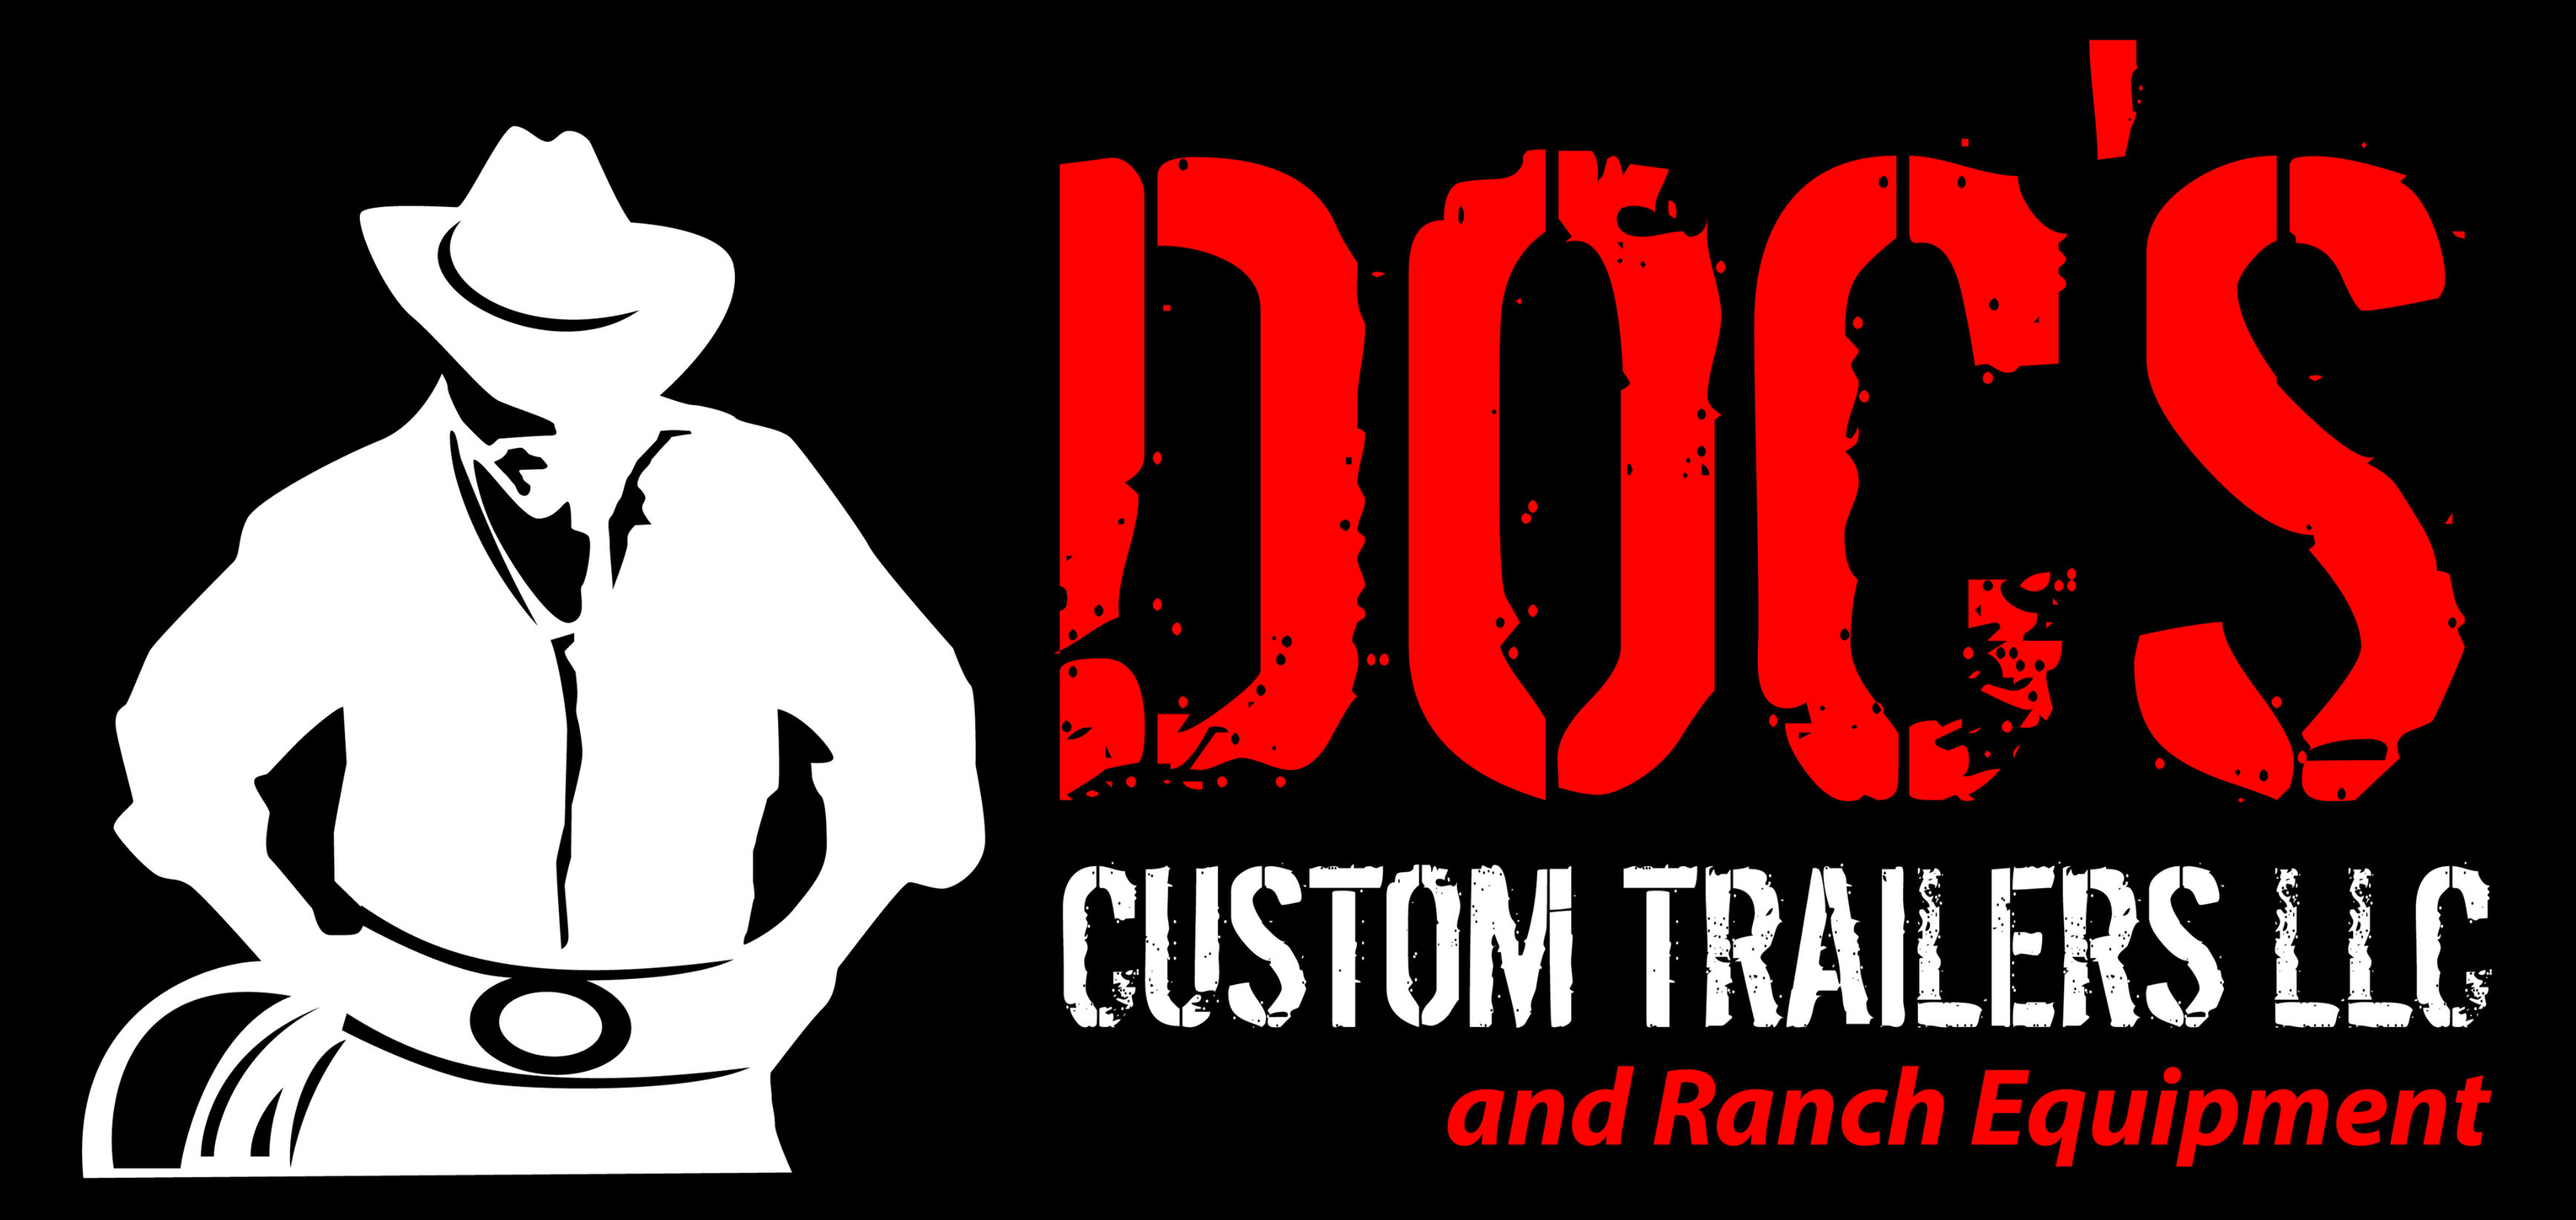 Docs Custom Trailers, LLC